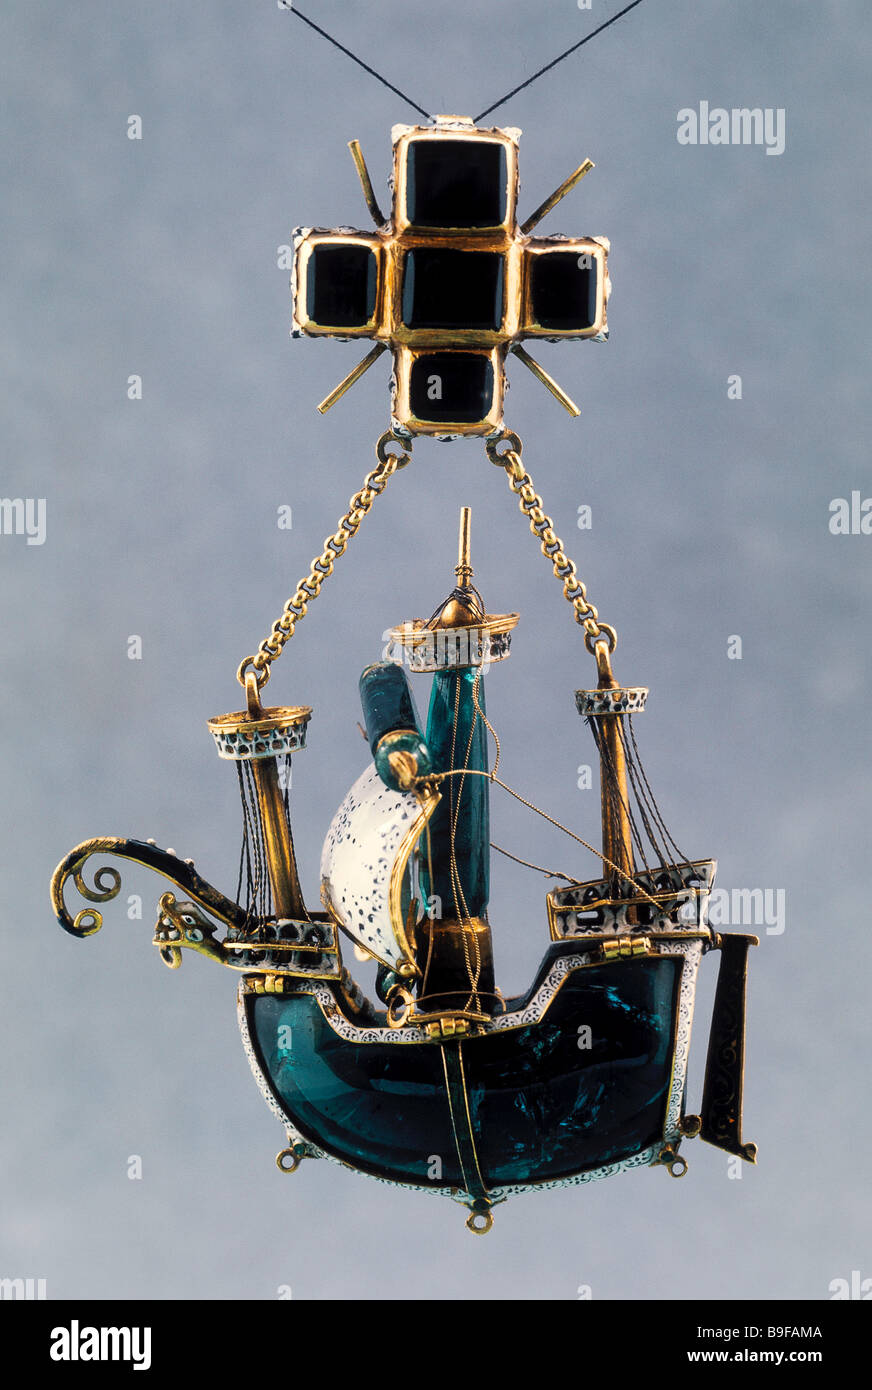 Sixteenth century golden Spanish caravel State Hermitage Golden Collection - Stock Image